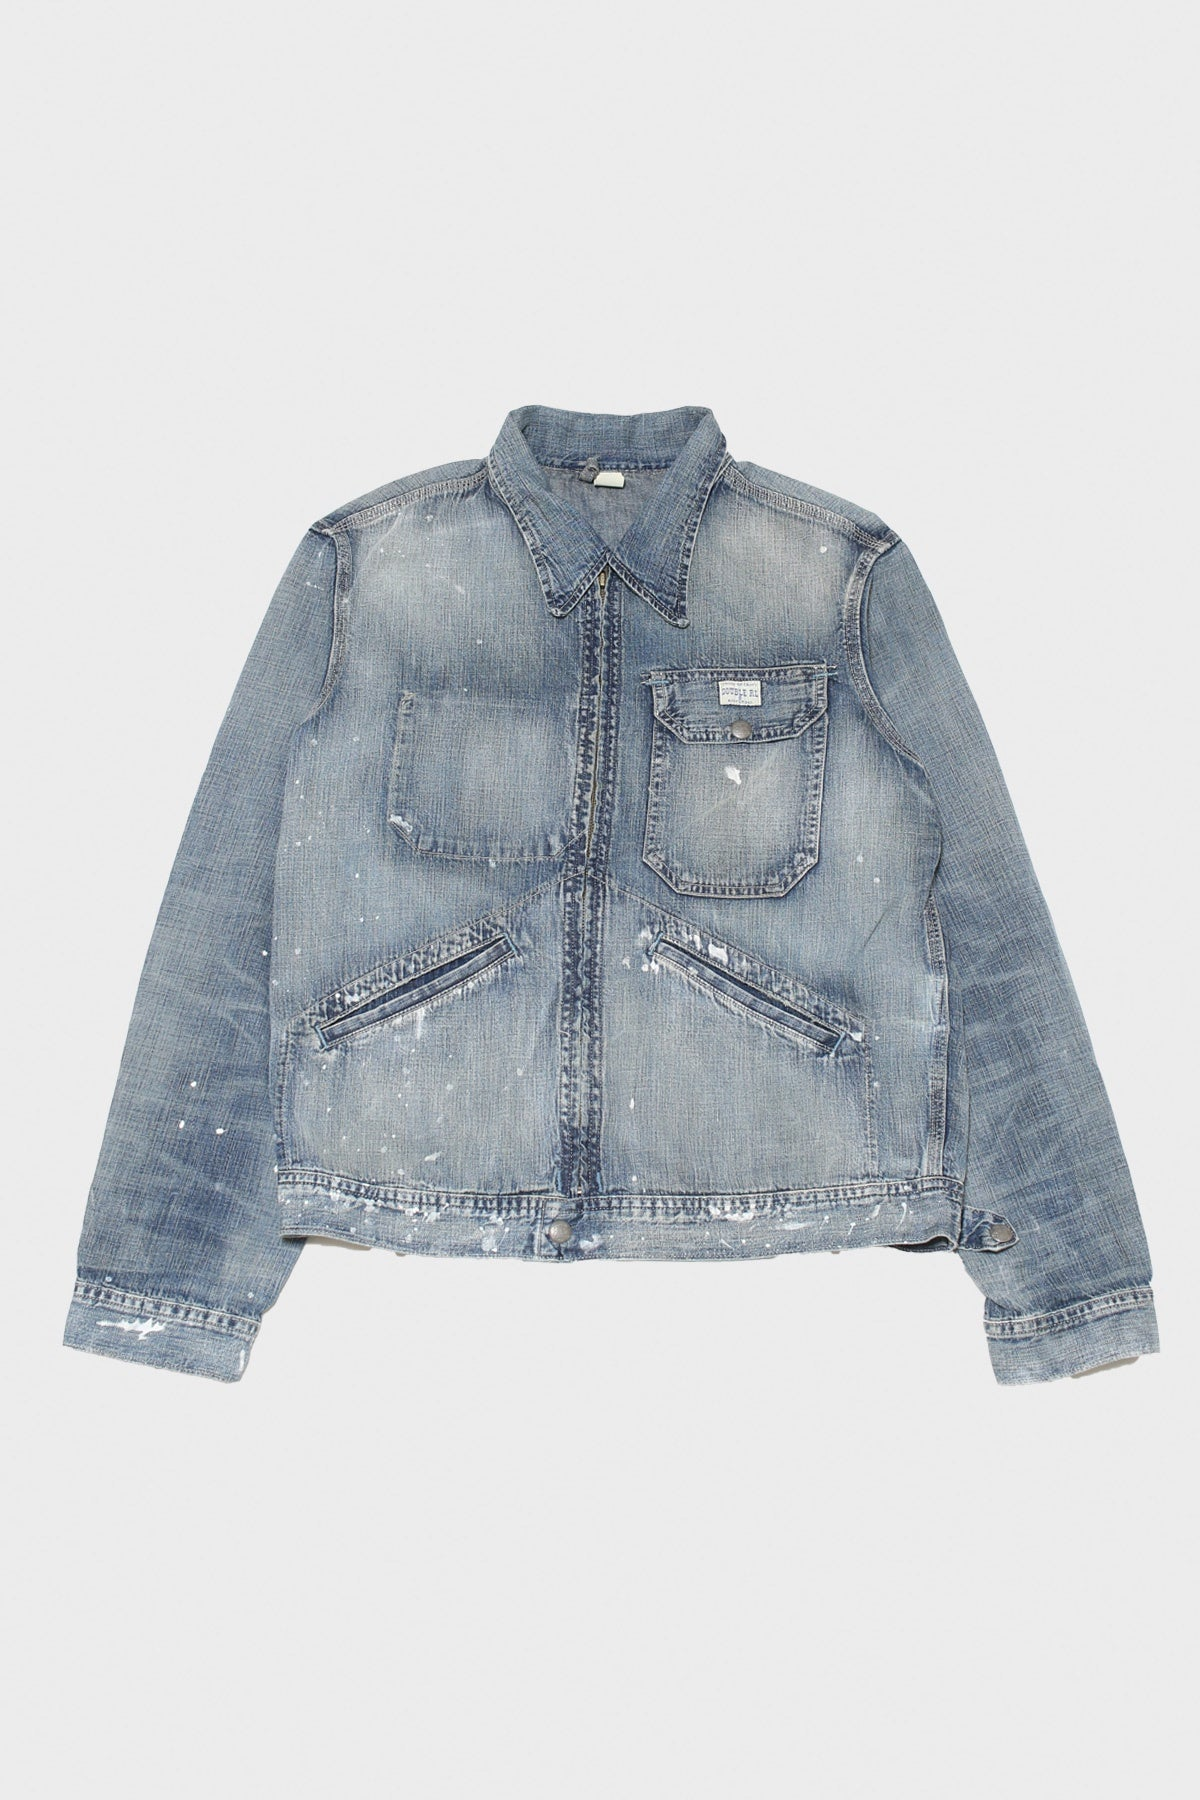 RRL - Distressed Indigo Denim Jacket - Billings Wash - Canoe Club